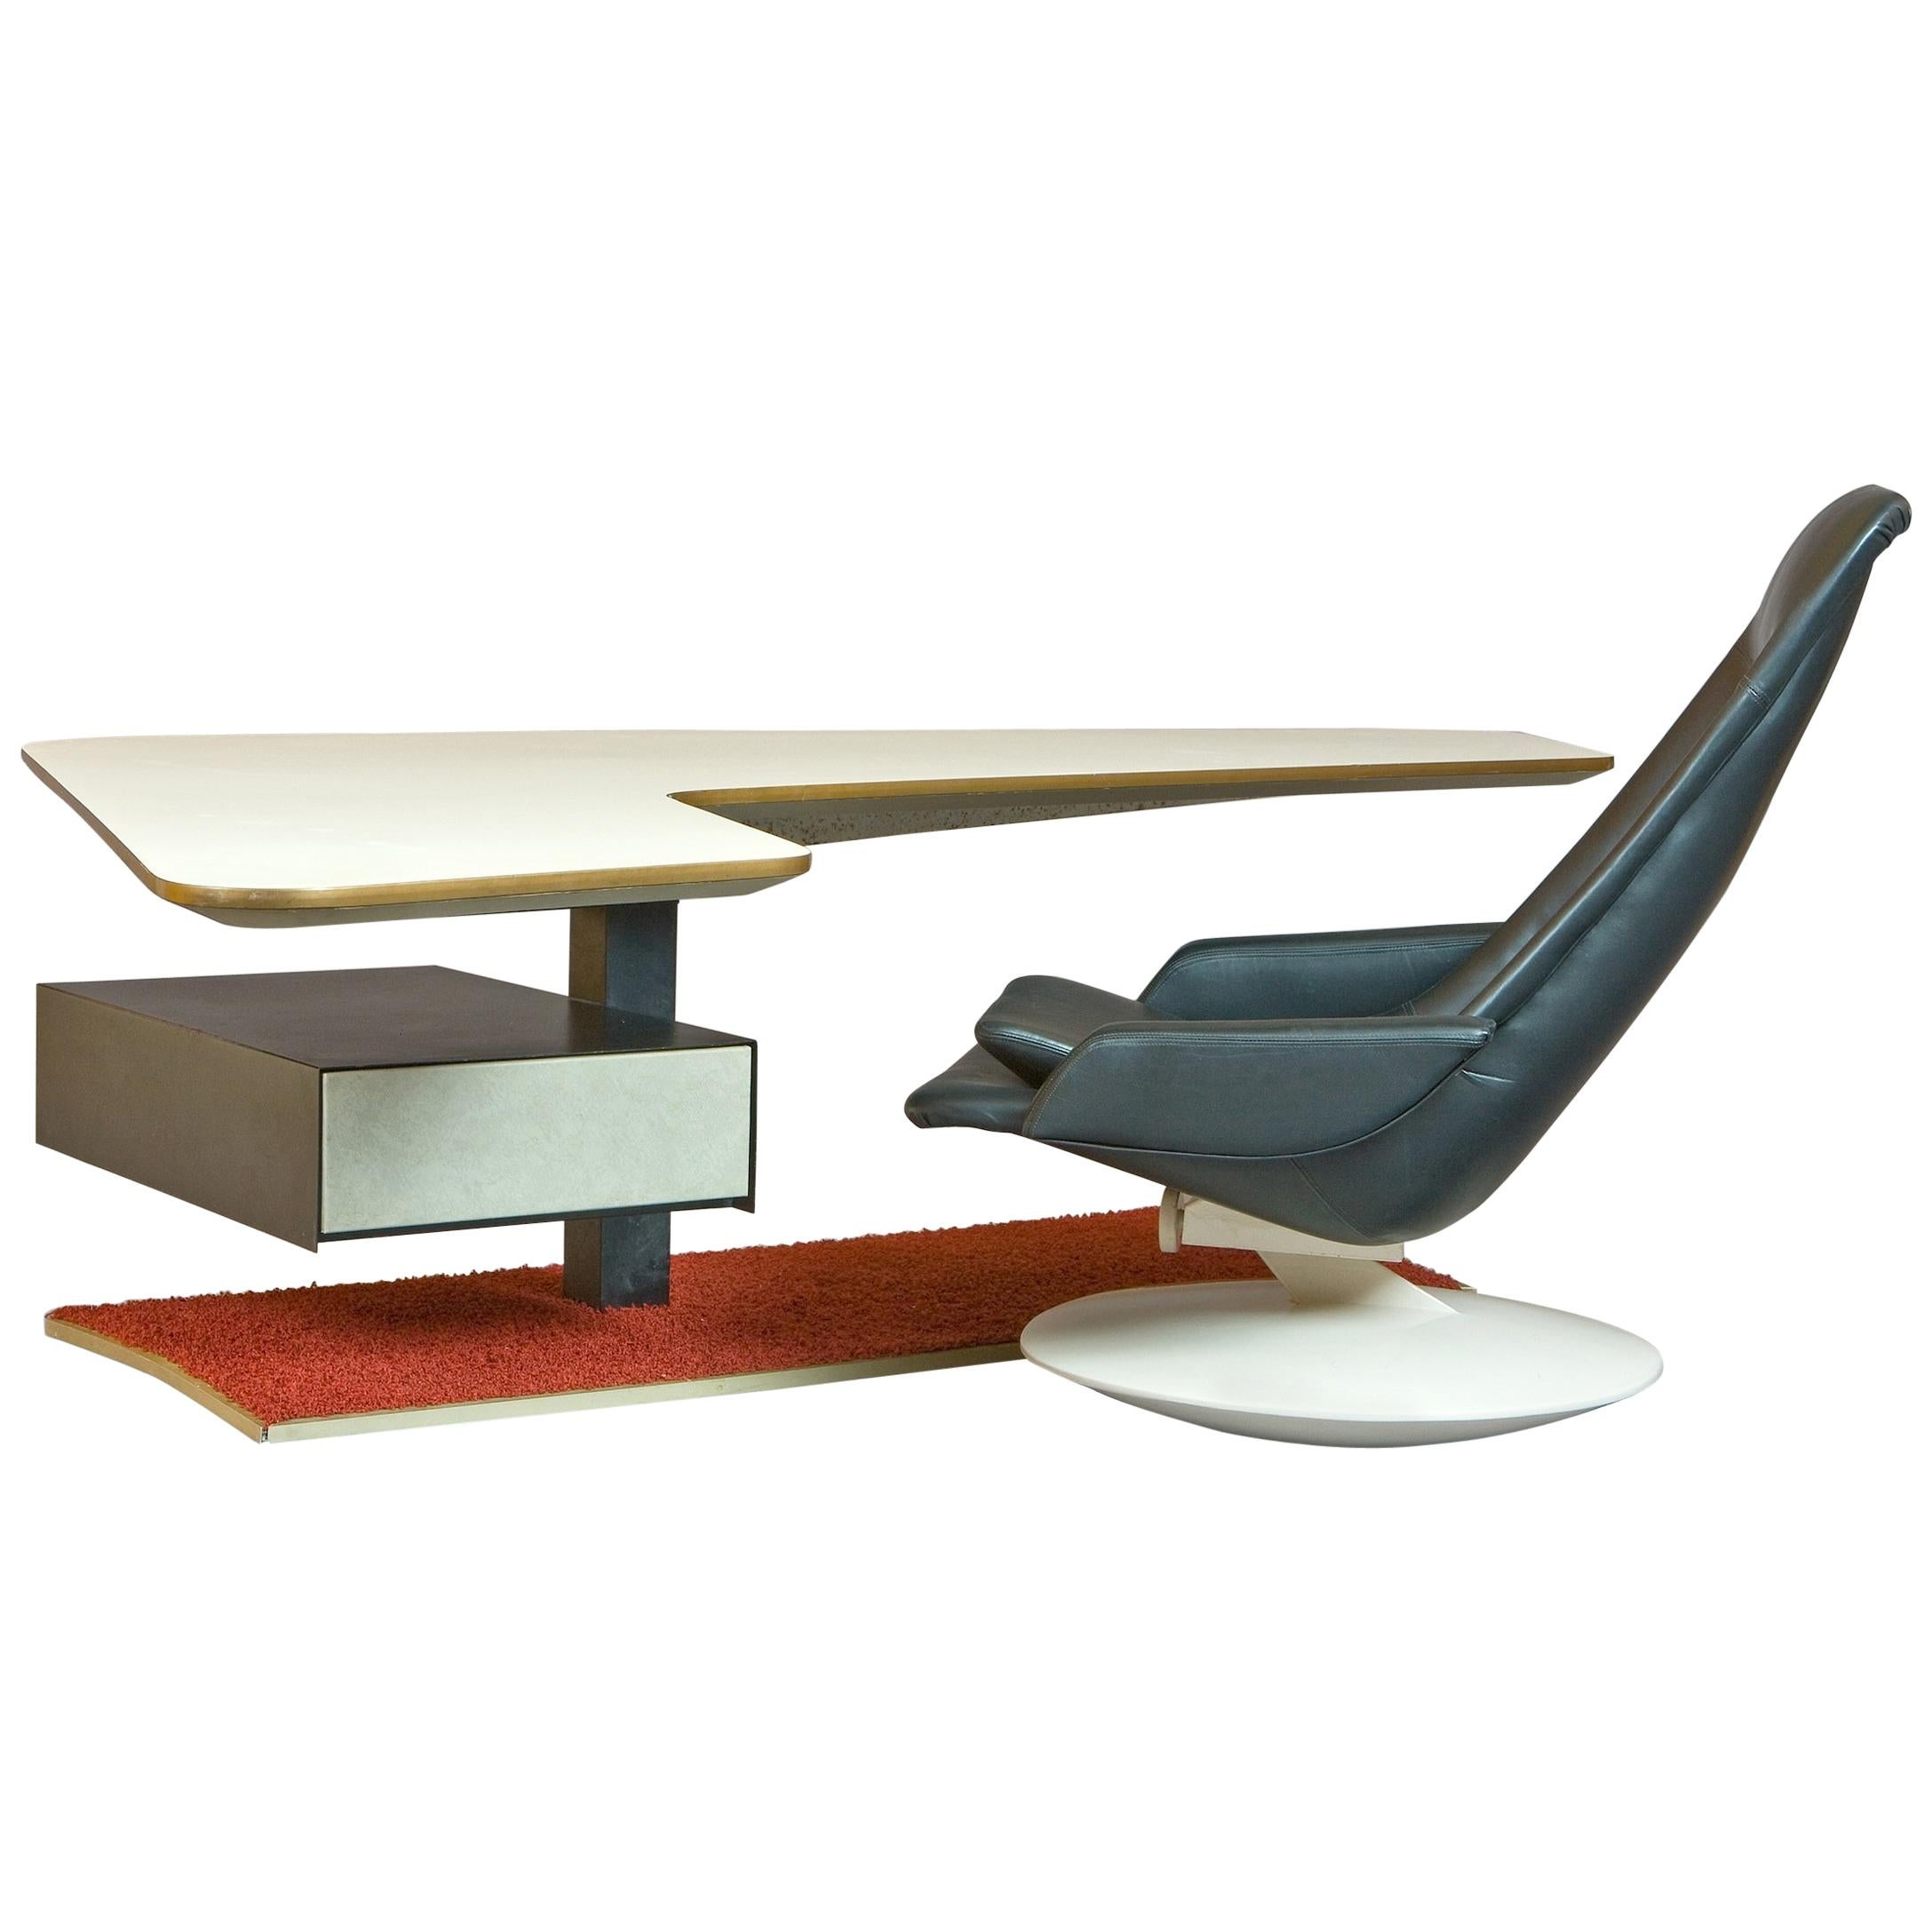 Rare Stunning Atomic Age Boomerang Desk and Gemini Leather Armchair, France 1970